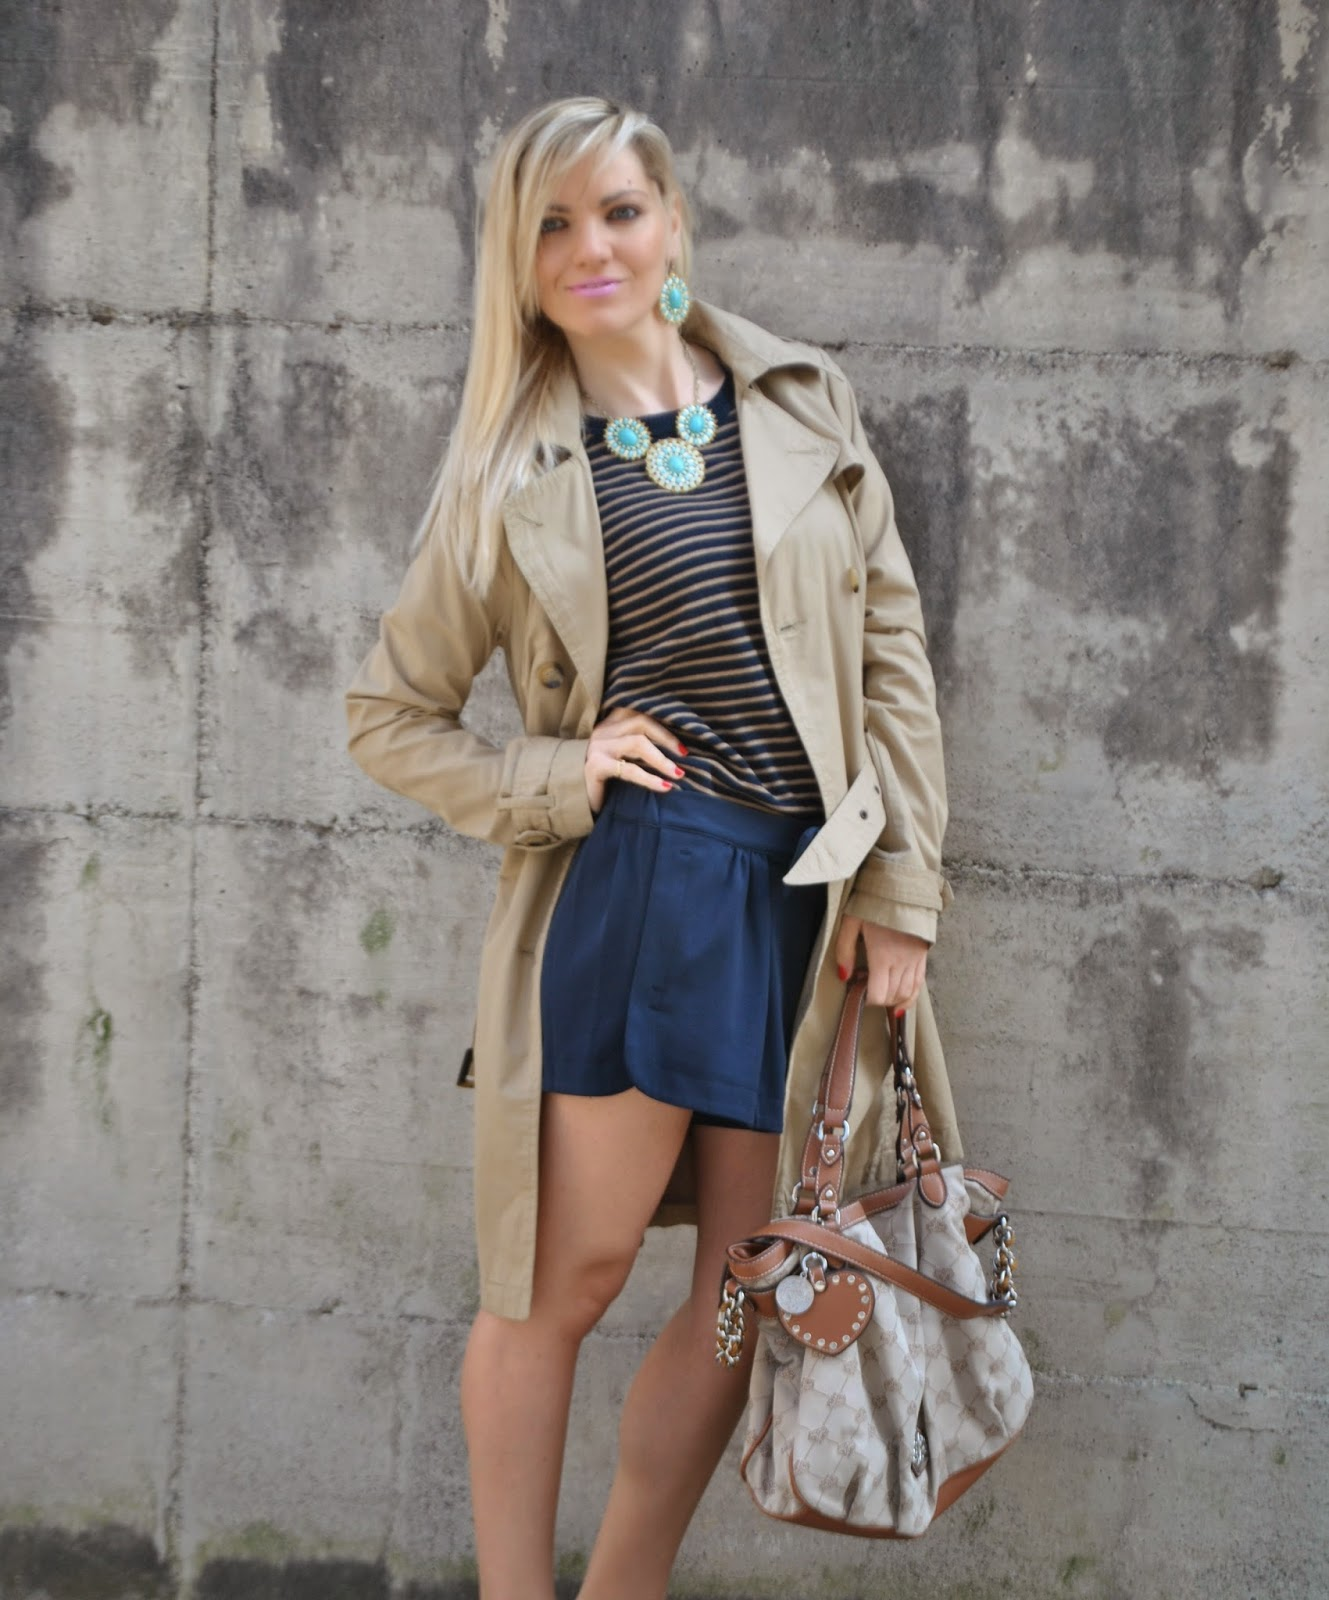 outfit trench cammello outfit shorts blu abbinamenti shorts come abbinare gli shorts outfit maglia a righe abbinamenti maglia a righe come abbinare la maglia a righe outfit olivia palermo outfit ispirato olivia palermo outfit trench olivia palermo mariafelicia magno fashion blogger colorblock by felym outfit aprile 2015 outfit primaverili donna spring outfit fashion bloggers italy fashion blogger italiane blog di moda ragazze bionde milano capelli biondi blondie blonde hair